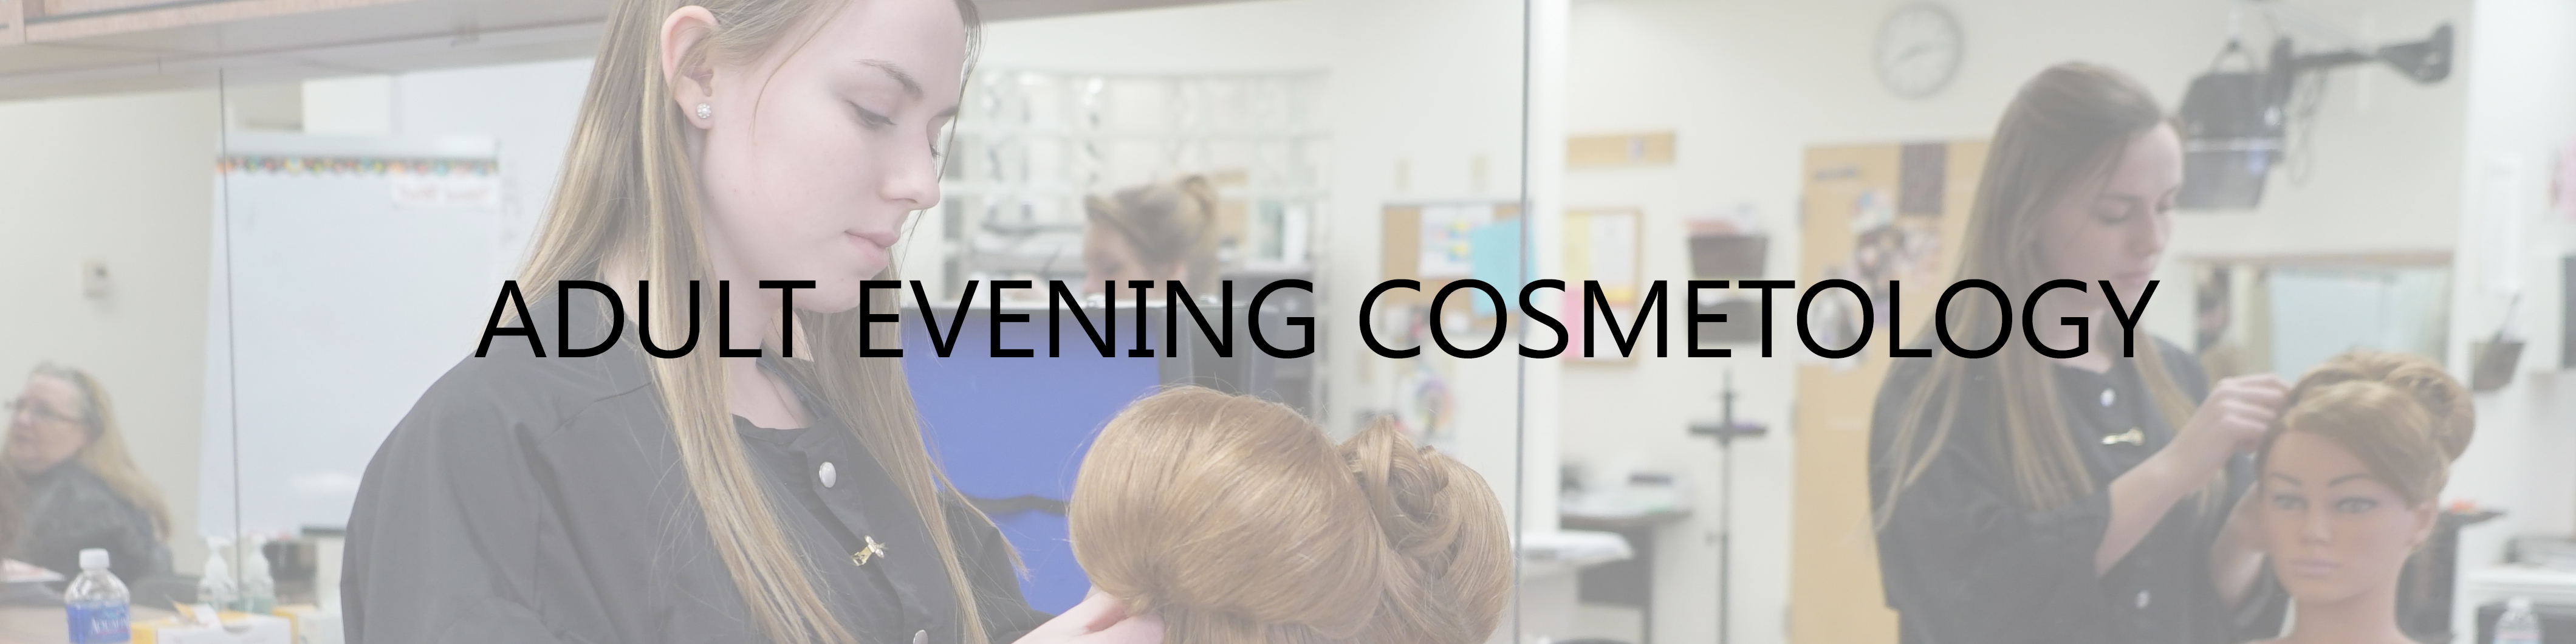 Adult Evening Cosmetology